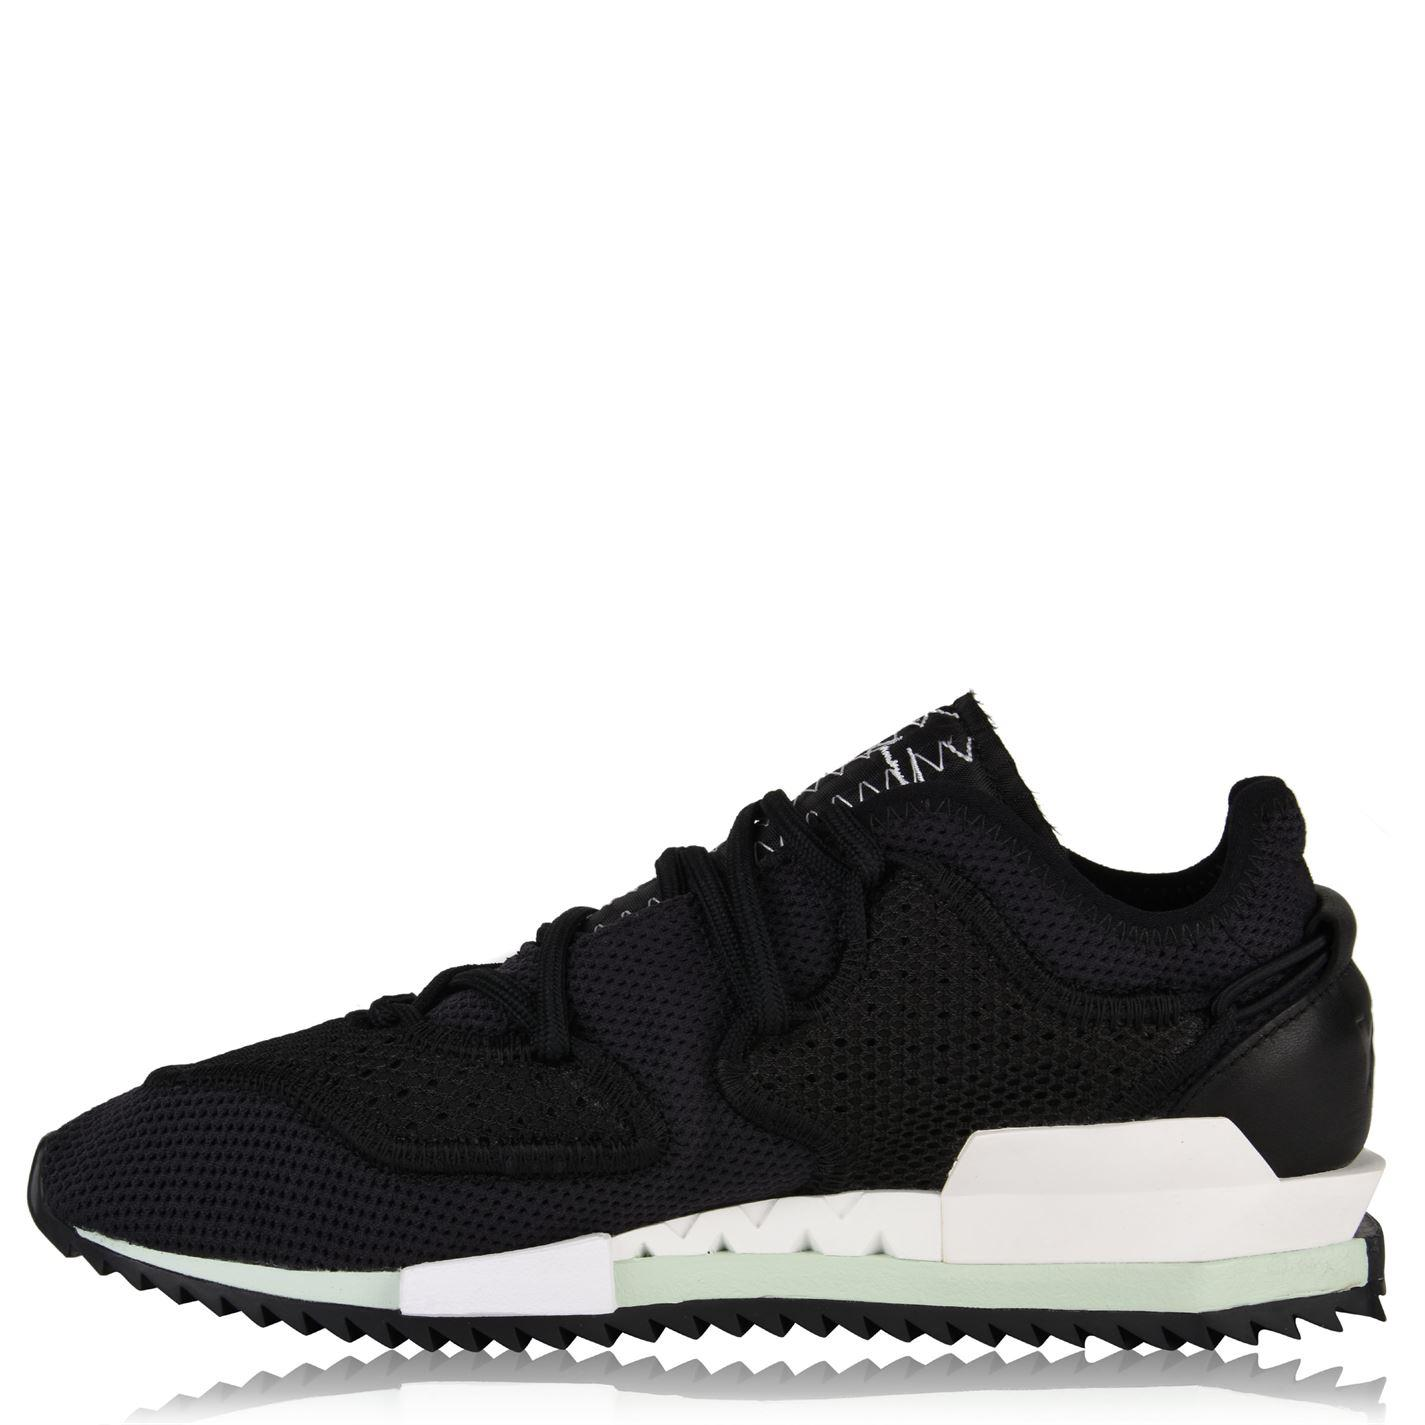 cheap for discount 22653 60ea1 Y-3 - Black Harigane Knit Mesh Trainers for Men - Lyst. View fullscreen